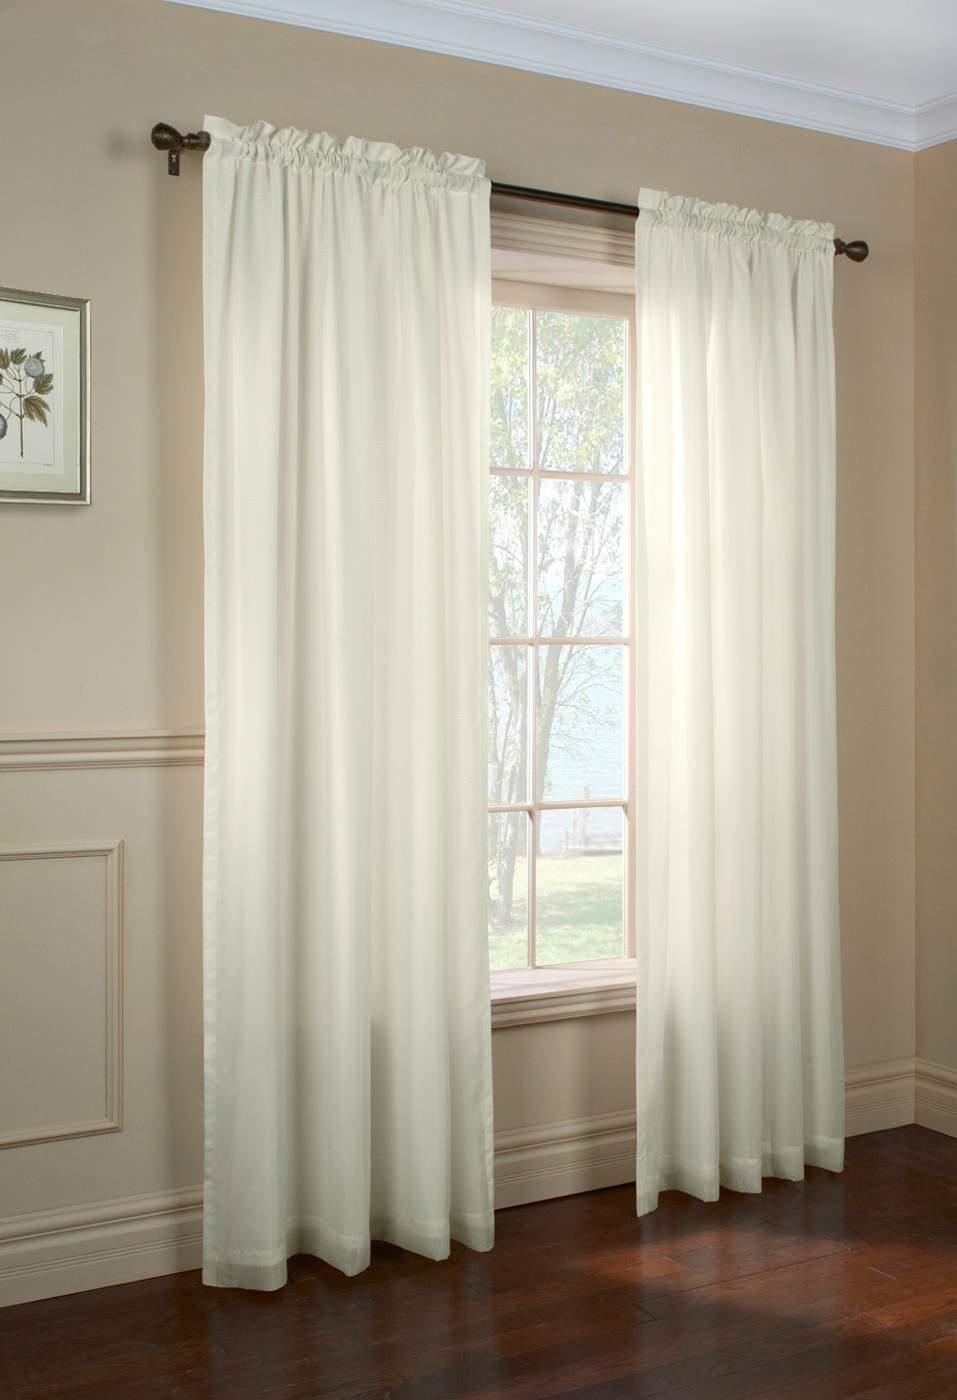 Sheer Curtain And Door Panels Sheer Curtain Panels At. Interior Decorating Jobs. Spurs Decorations. Gray And Tan Living Room Ideas. Black Sofas Living Room Design. Grey Decorative Pillow. Glass Pumpkin Decorations. Decorating A Bedroom. Snowmen Decorations